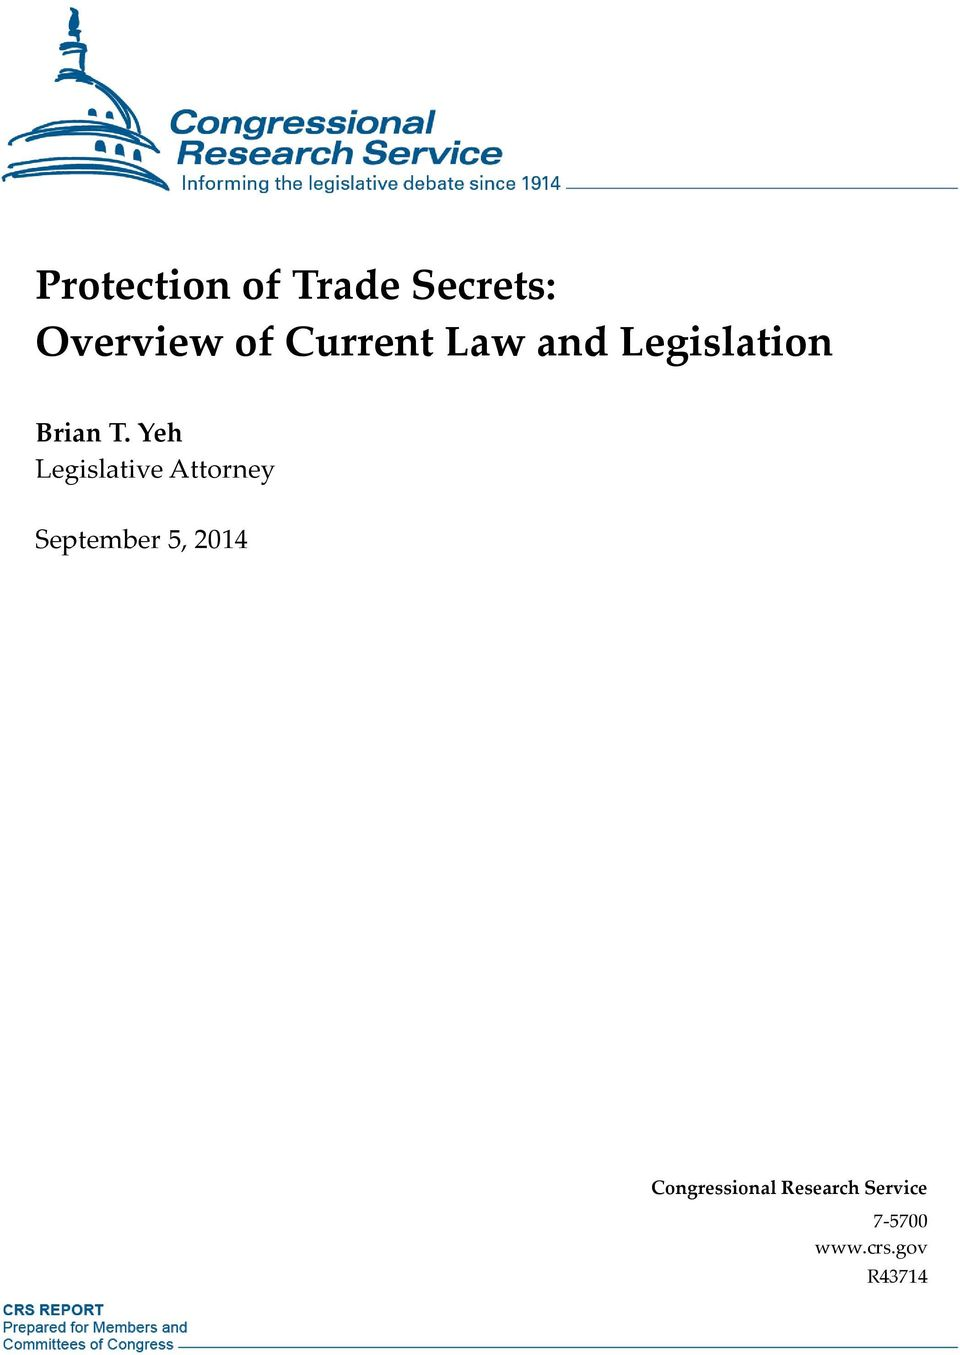 Protection Of Trade Secrets Overview Current Law And Legislation Yeh Legislative Attorney September 5 2014